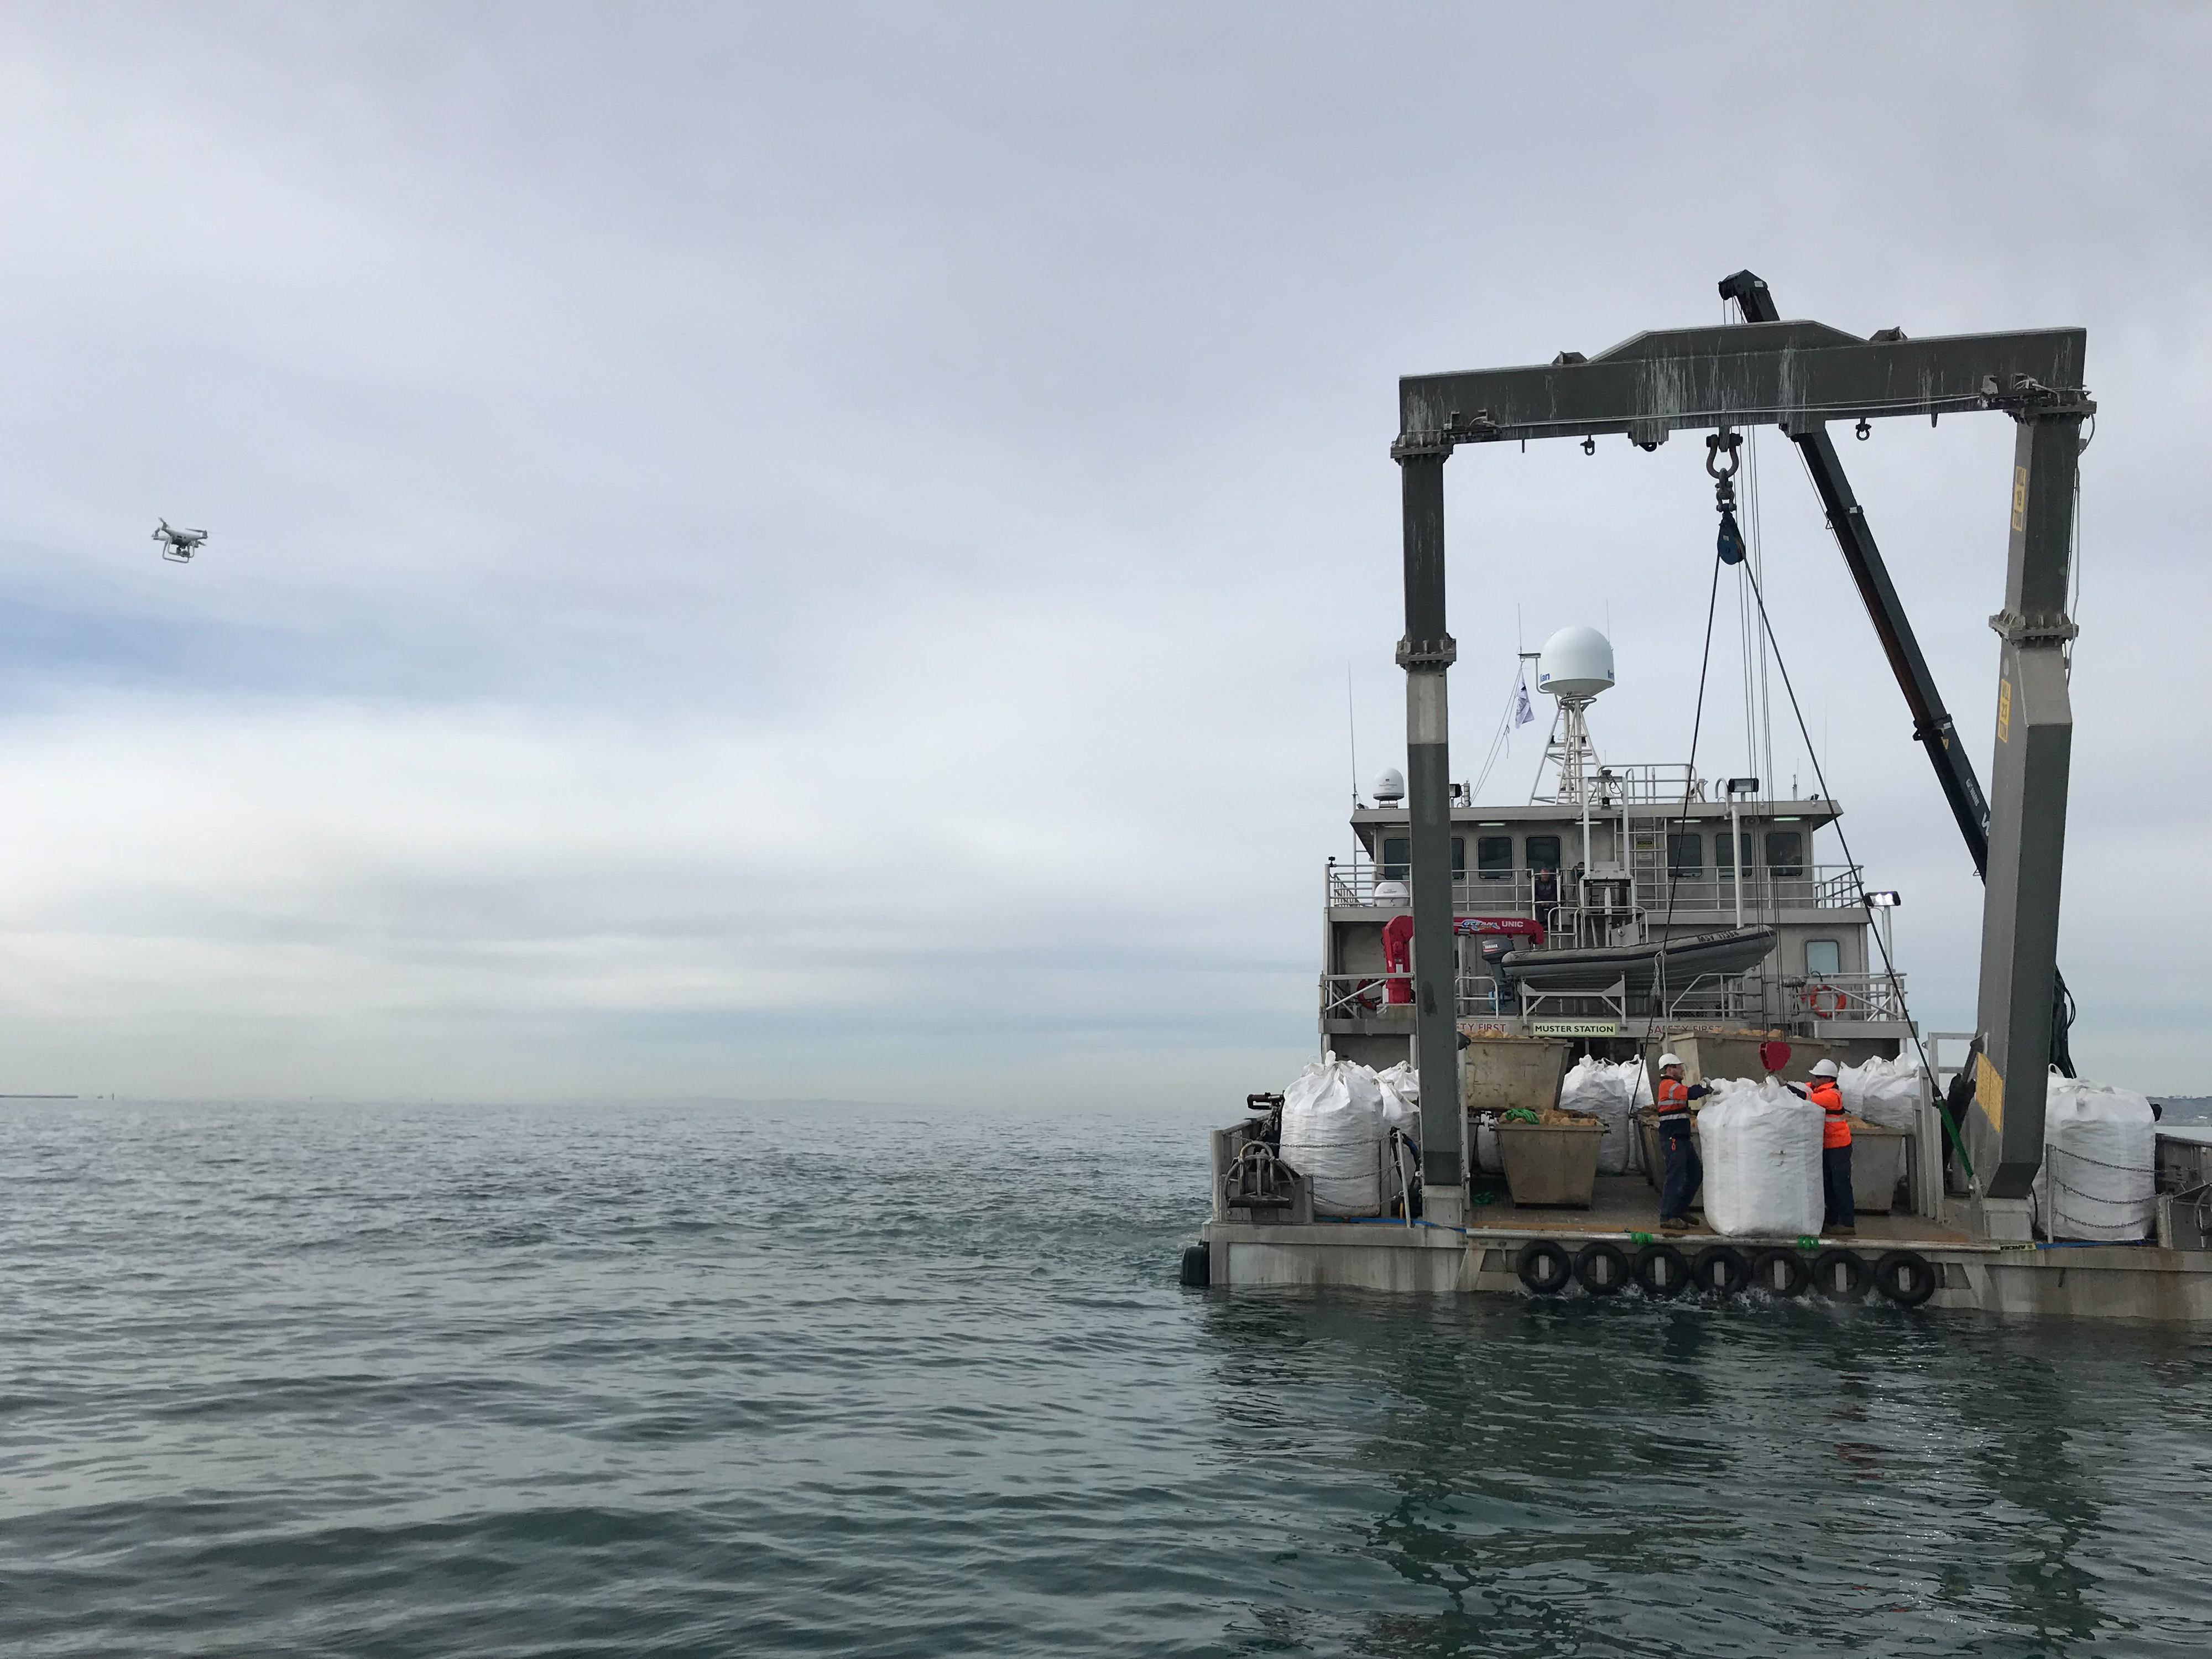 Latest update on reef construction in Port Phillip Bay.